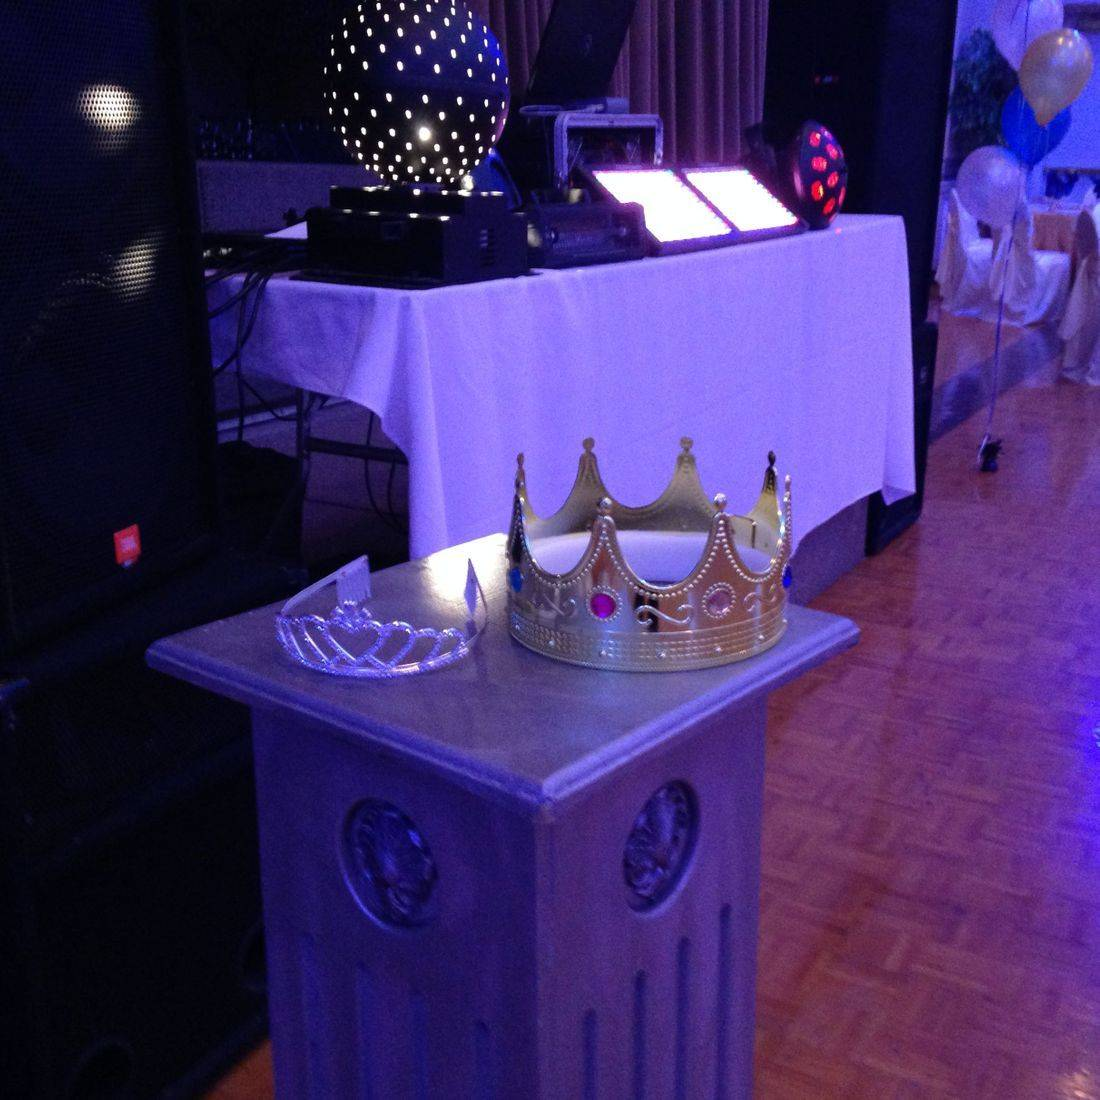 Mr. Productions DJ Service at a St. Jean de Brebeuf's Prom at Michaelangelo's